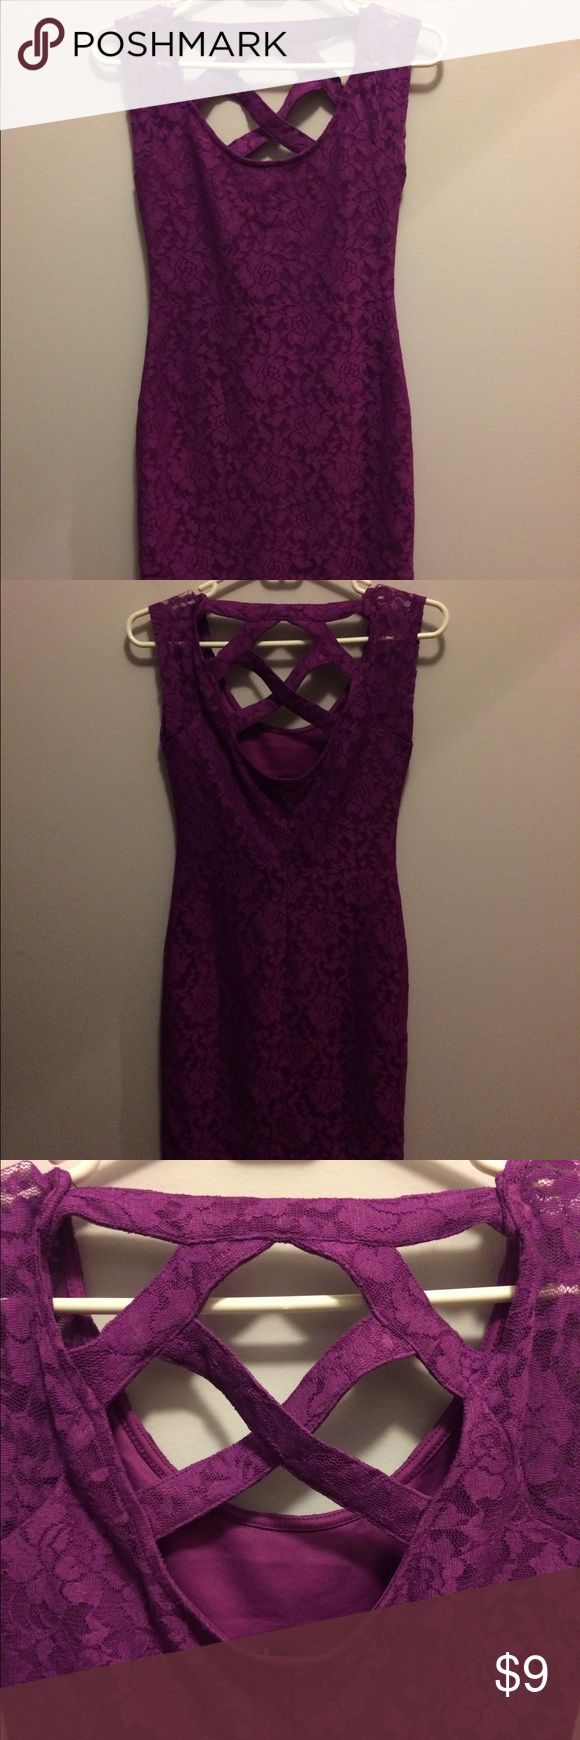 Pacsun Bodycon Lace Dress It's a beautiful purple laced dress. It's a small but it should be extra small. Only worn twice! 💋 PacSun Dresses Mini